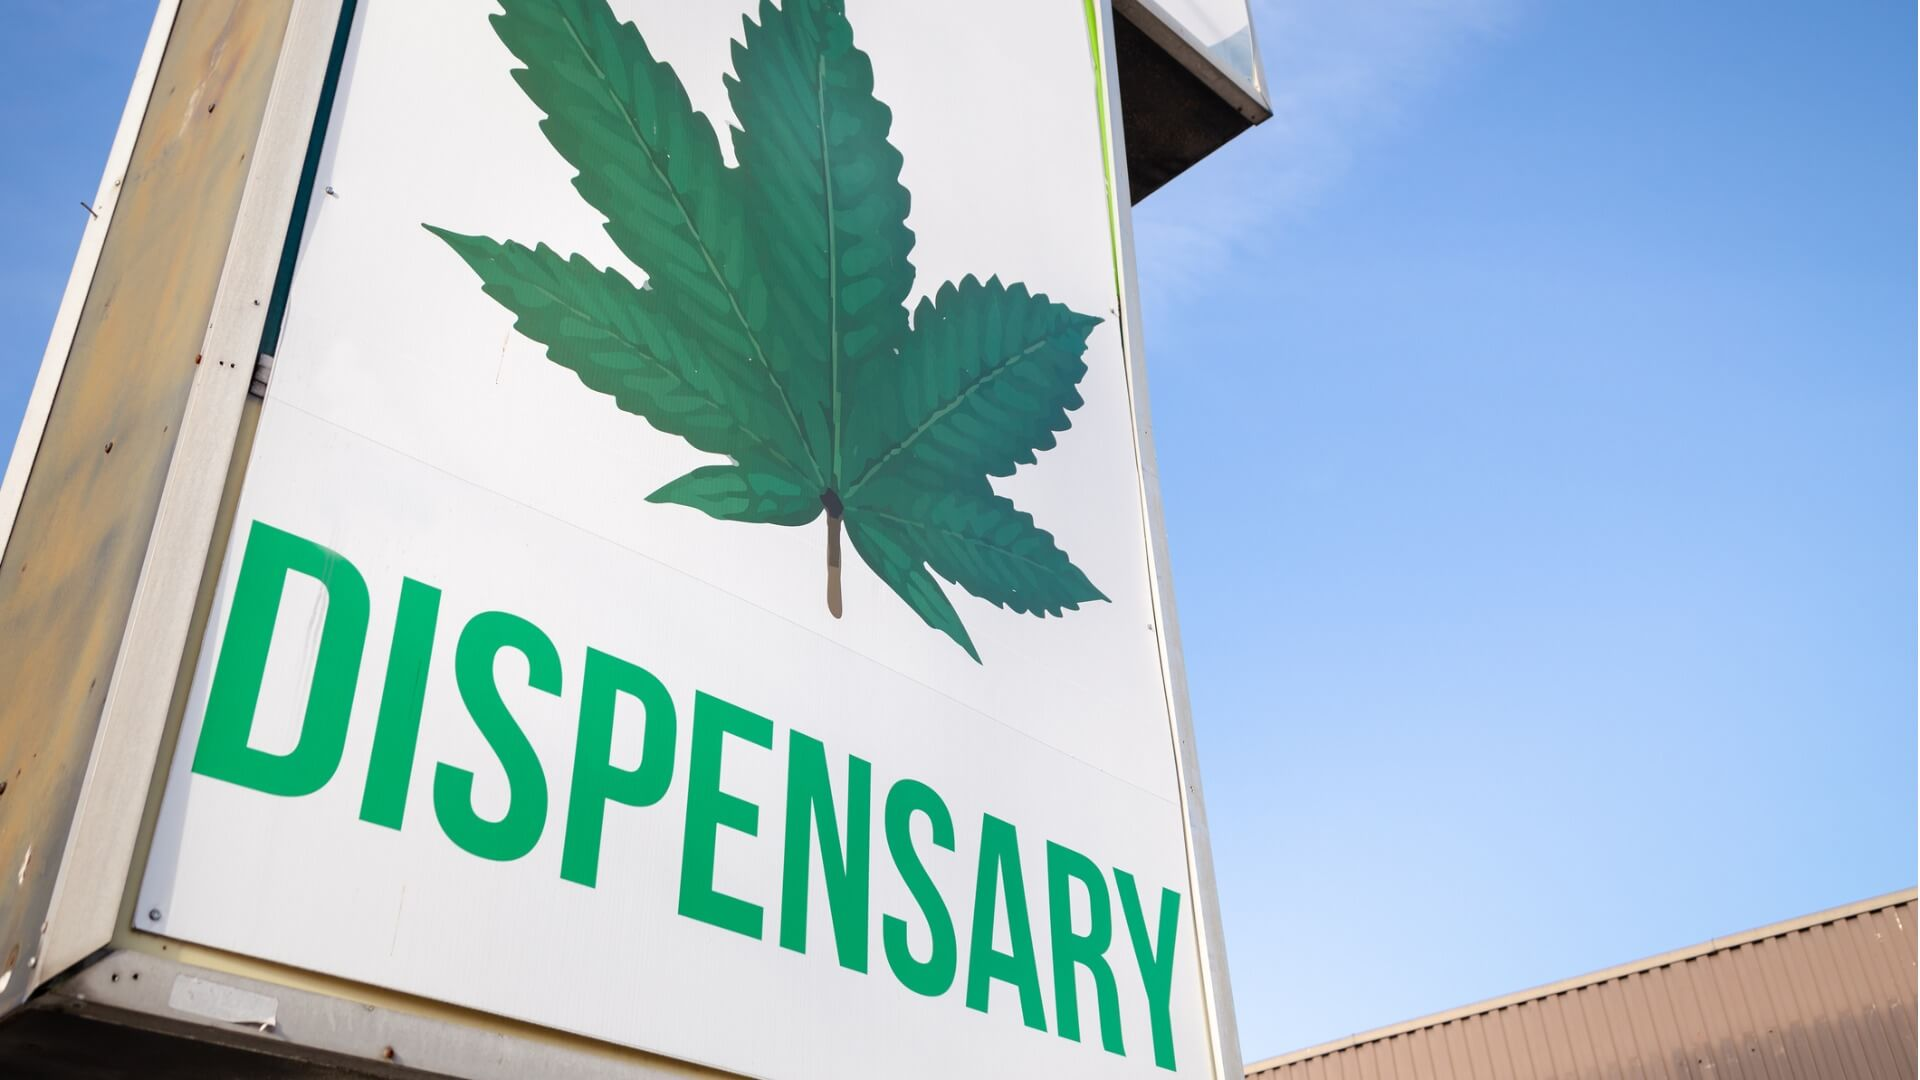 Things you should know before opening a dispensary